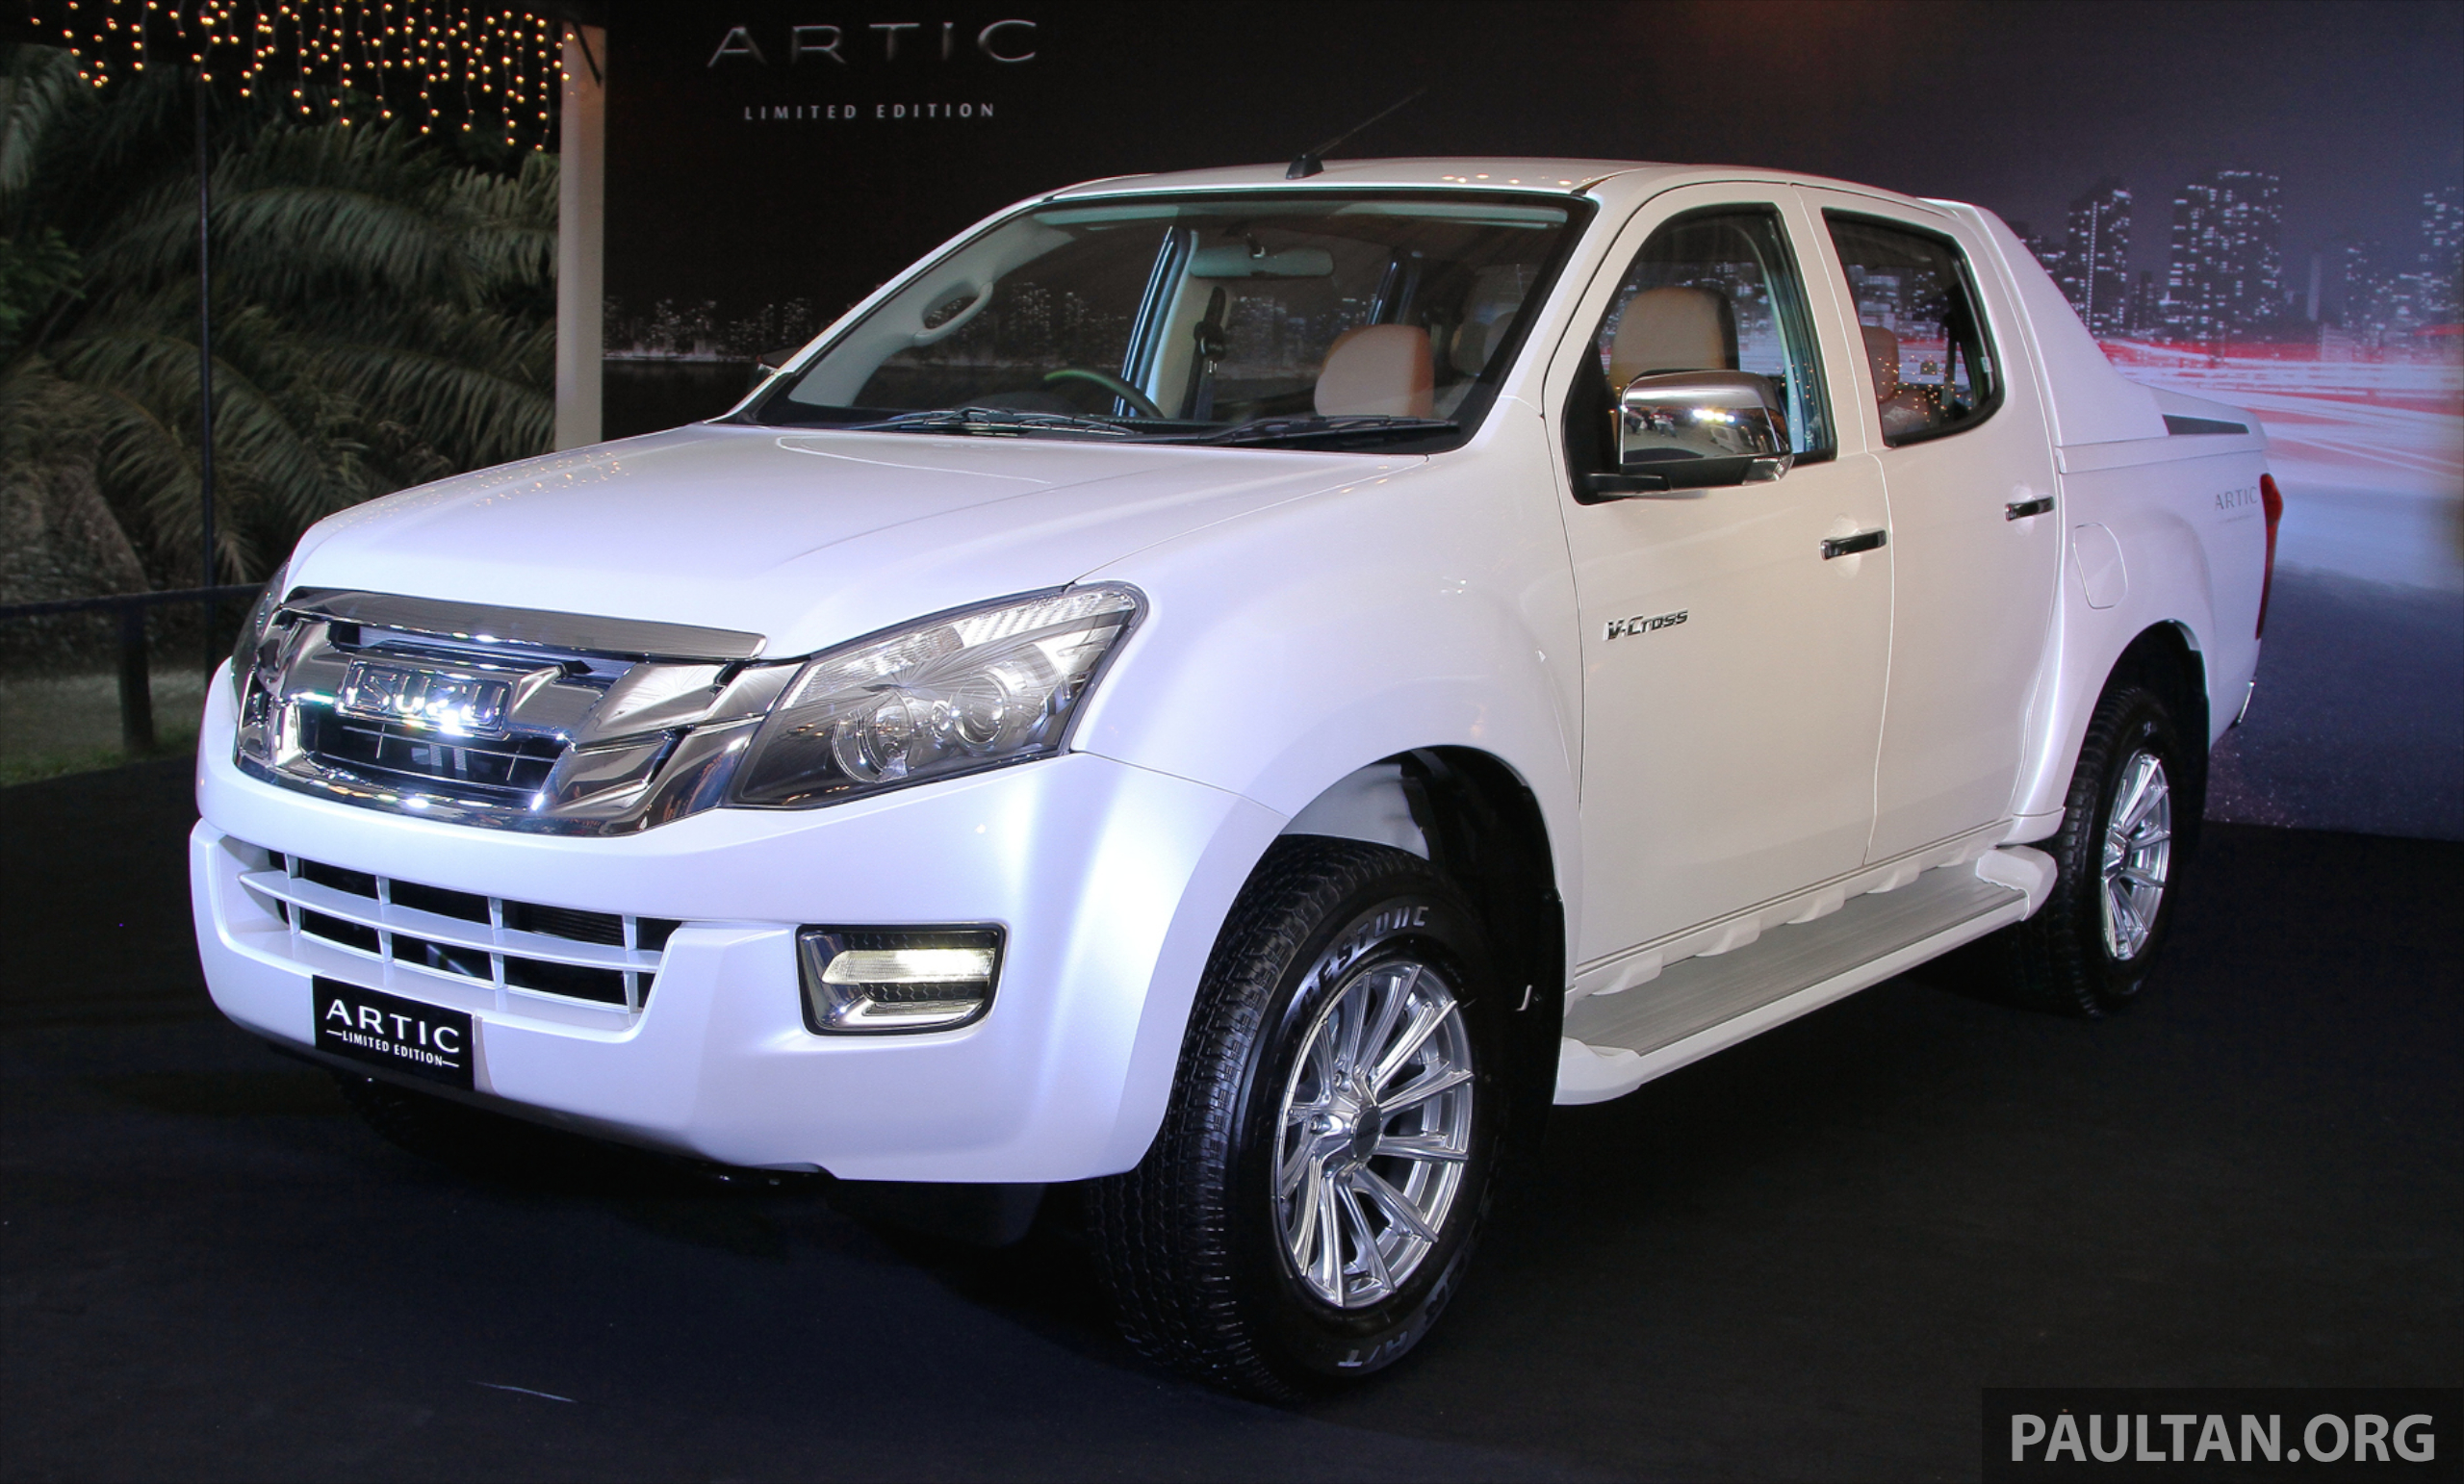 Back to Story: Isuzu D-Max Artic – limited edition run of 510 units